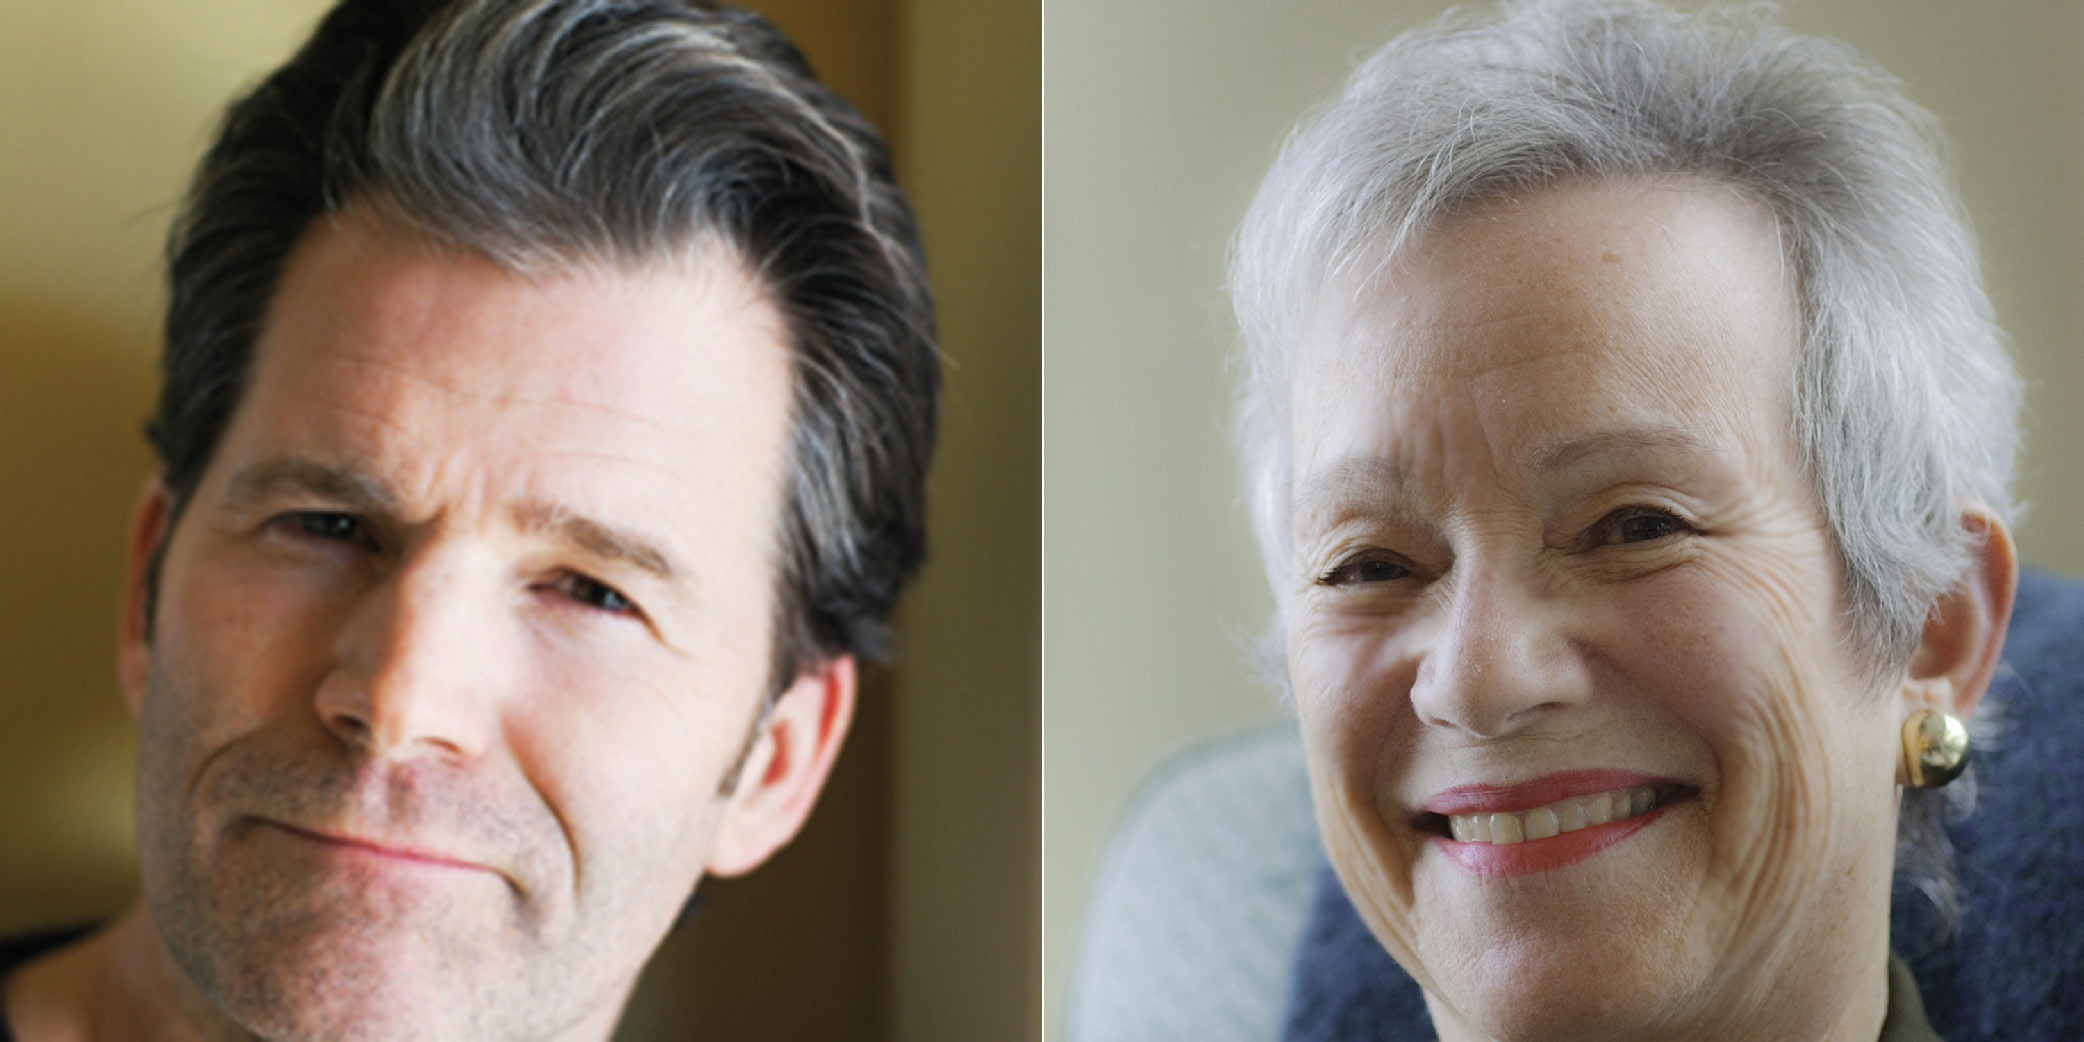 Andre Dubus III (left) & Edith Pearlman (right)